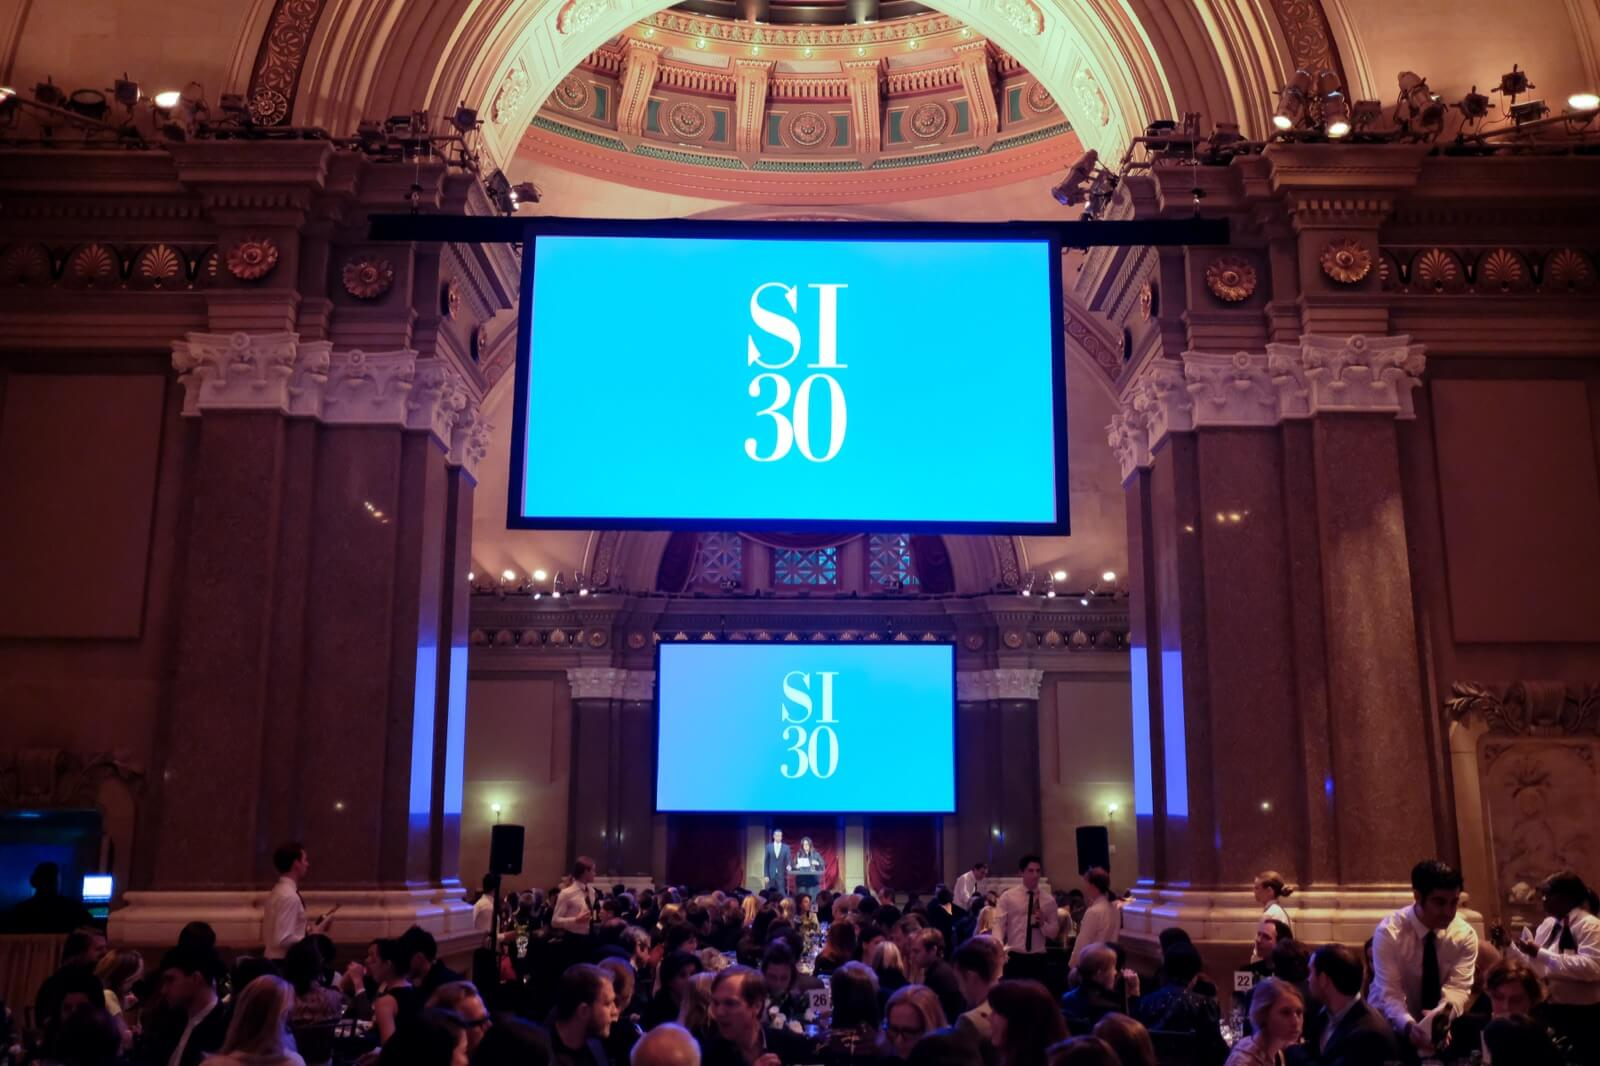 Swiss Institute 30th Anniversary Dinner and Auction